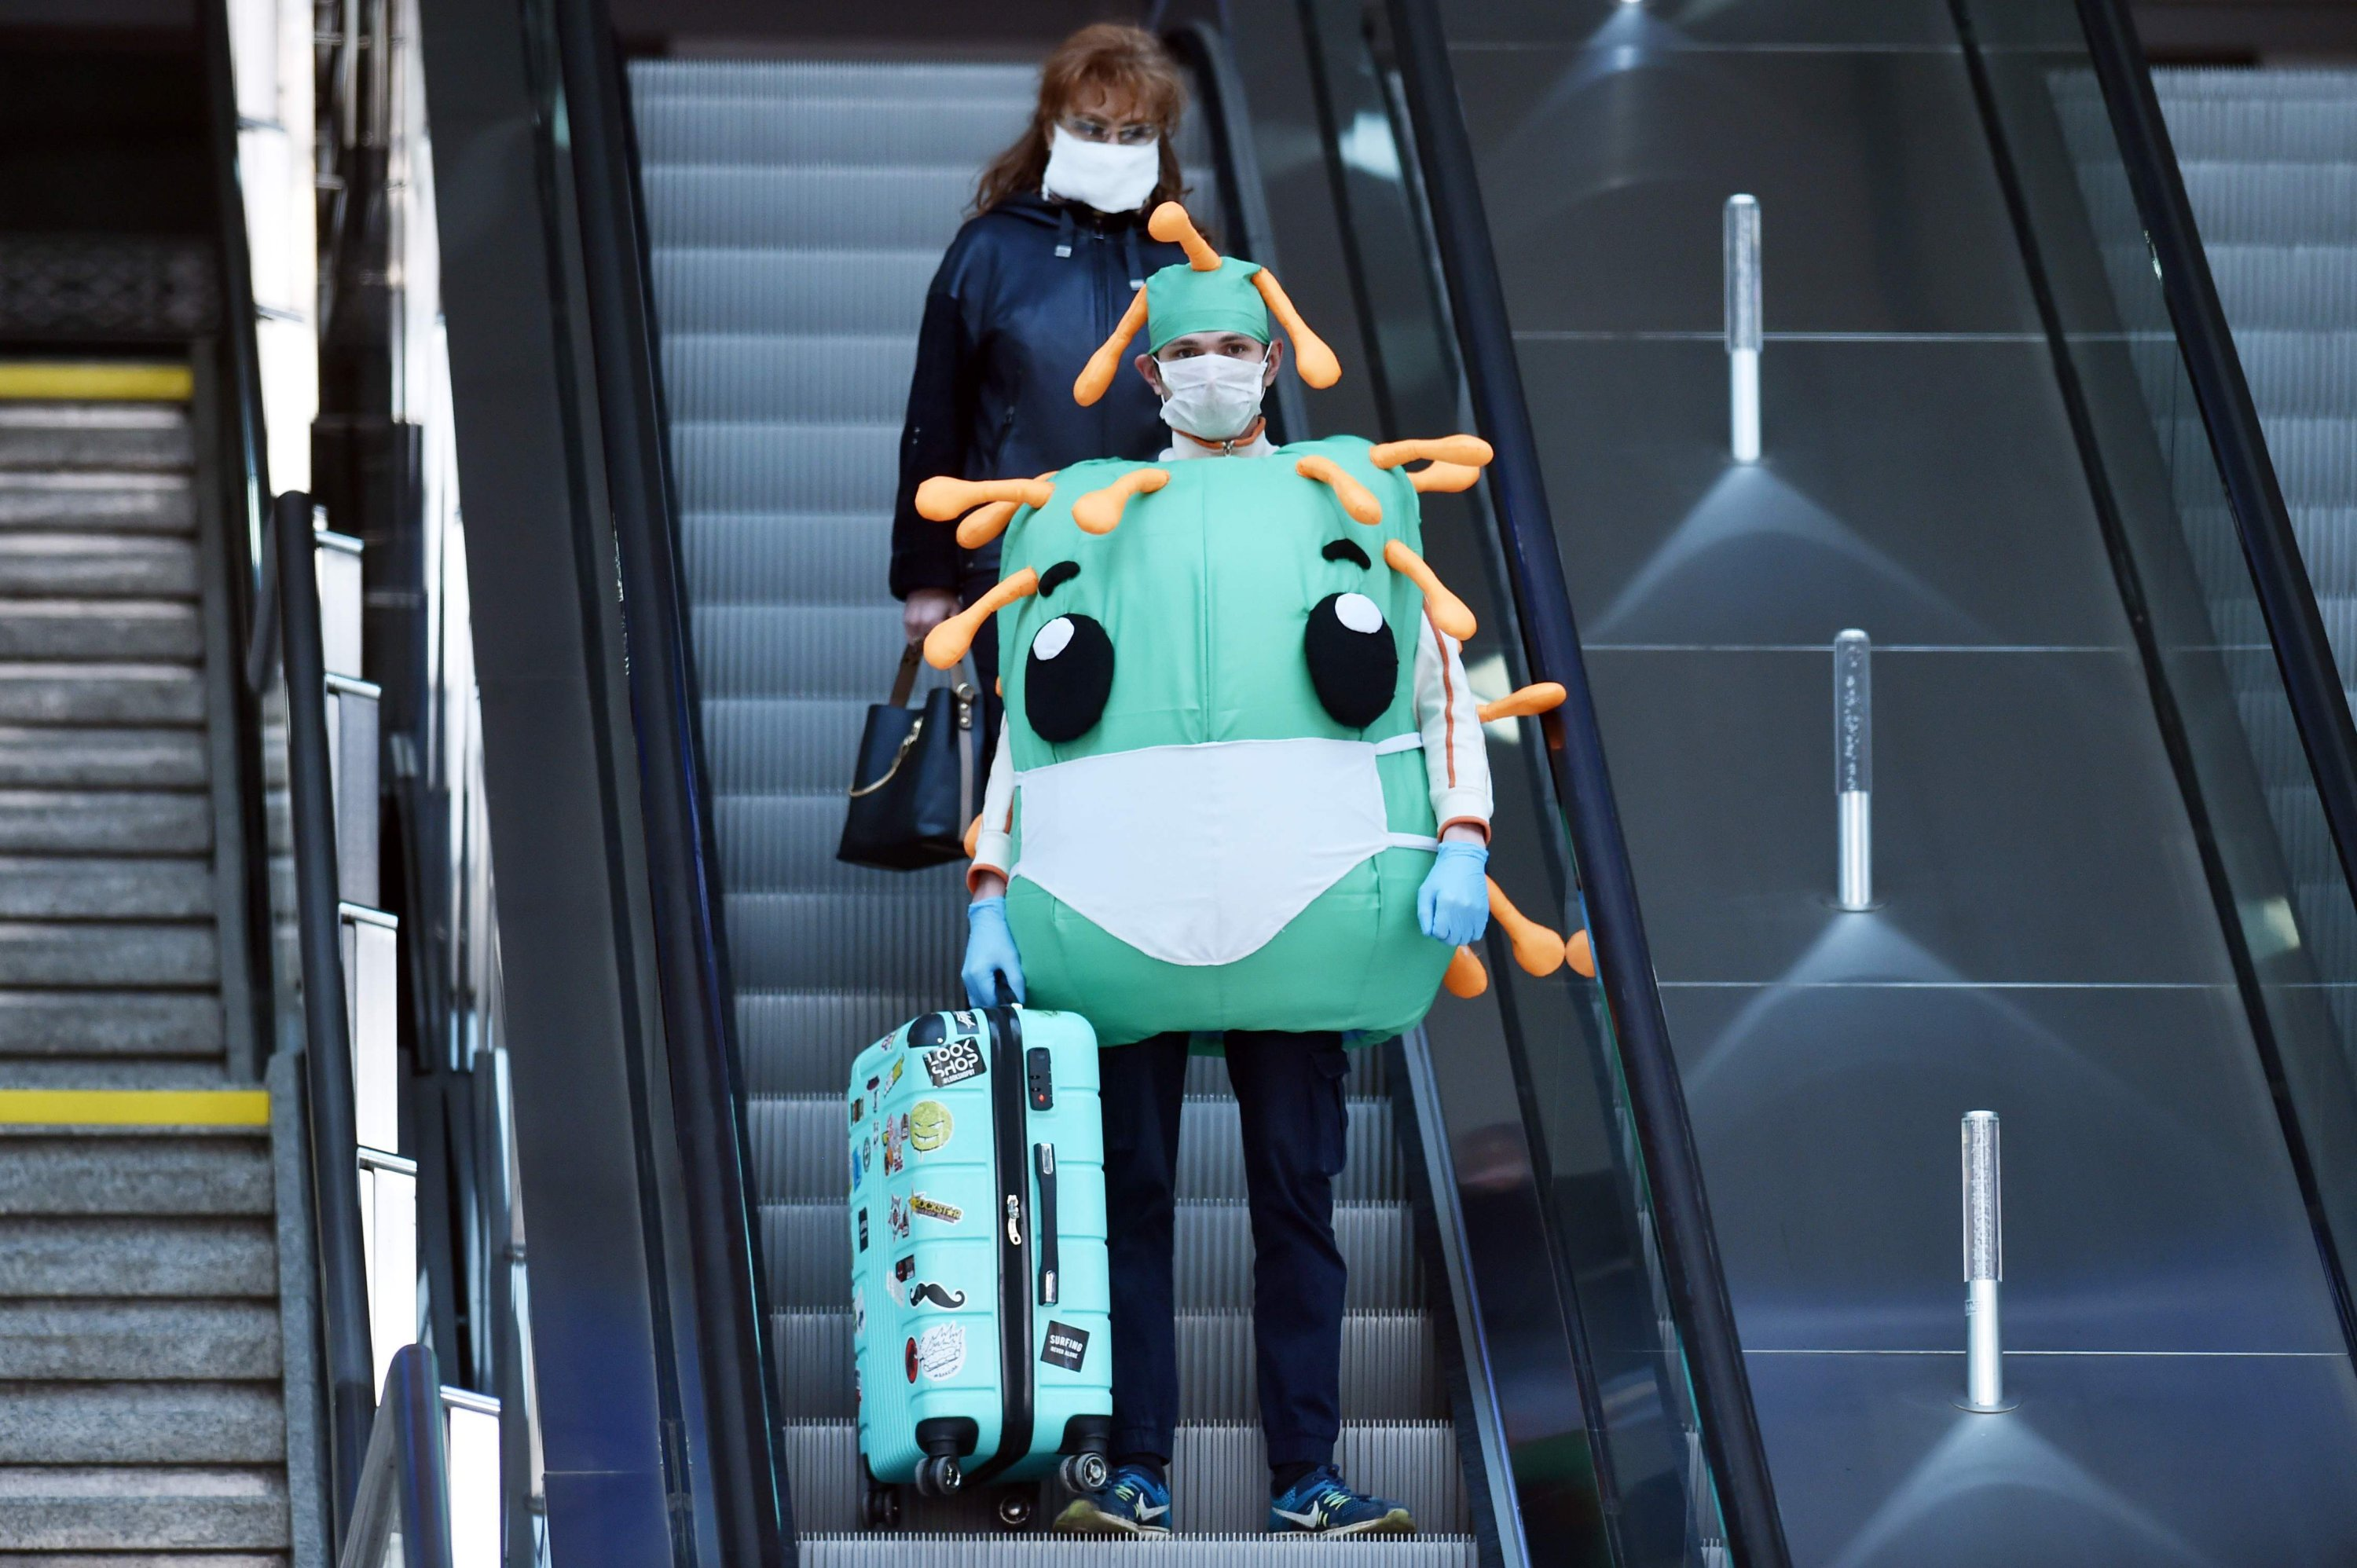 A man wearing a coronavirus costume and a face mask stands on the escalator of a railway station in Minsk on April 11, 2020. (AFP Photo)